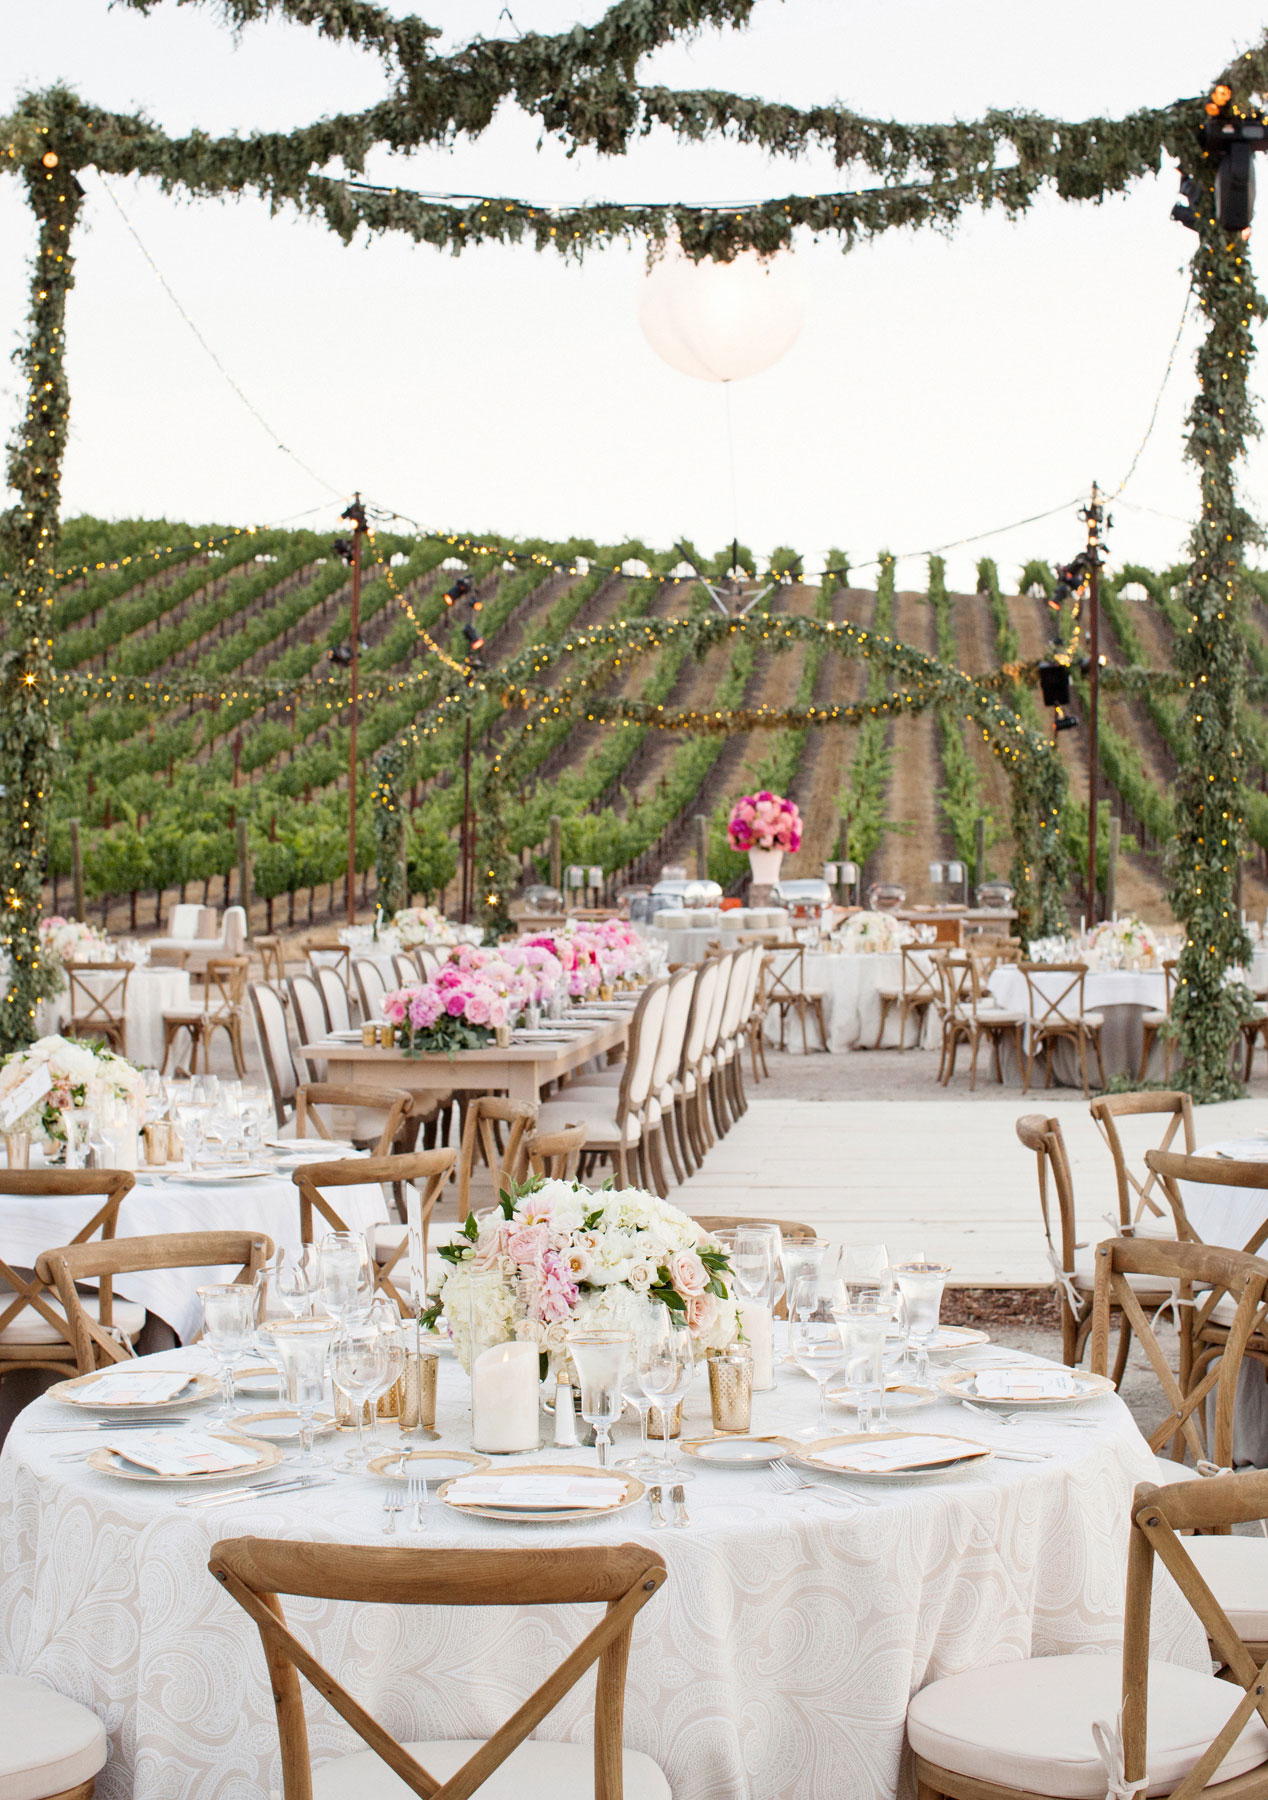 Italian bistro cafe string light rental for wedding reception in - Winery Vineyard Wedding With String Lights At Reception